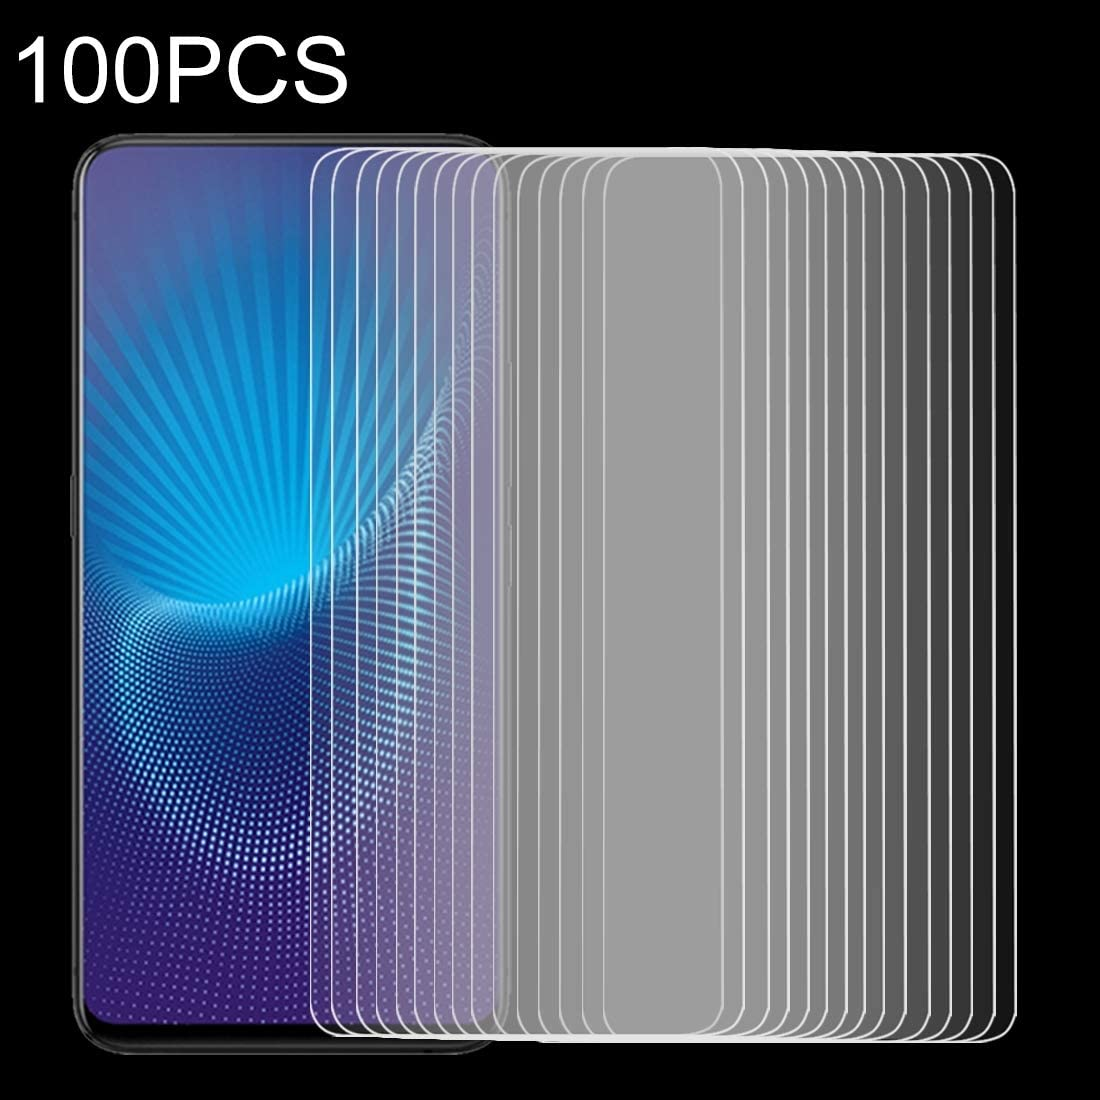 CAIFENG Tempered Glass Film Screen Protector 100 PCS 9H 2.5D Tempered Glass Film for Lenovo Viber P1m Anti-Scratch